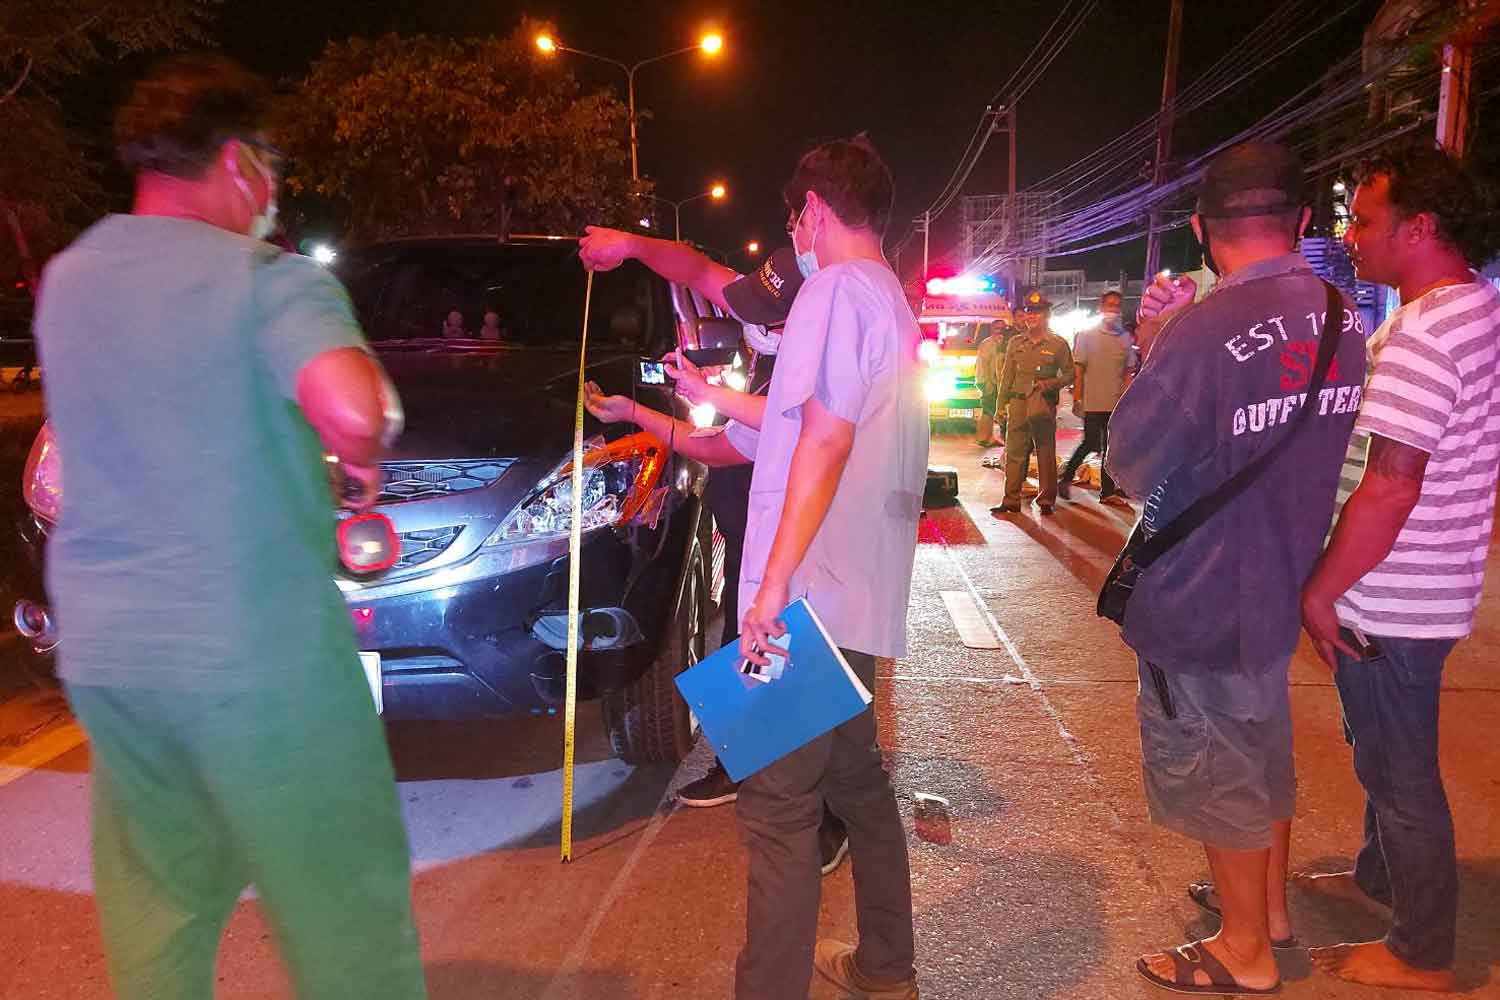 A police officer takes measurements at the scene where a pickup struck and killed an elderly woman crossing a busy road in Muang district, Nakhon Ratchasima, on Monday night. (Photo: Prasit Tangprasert)